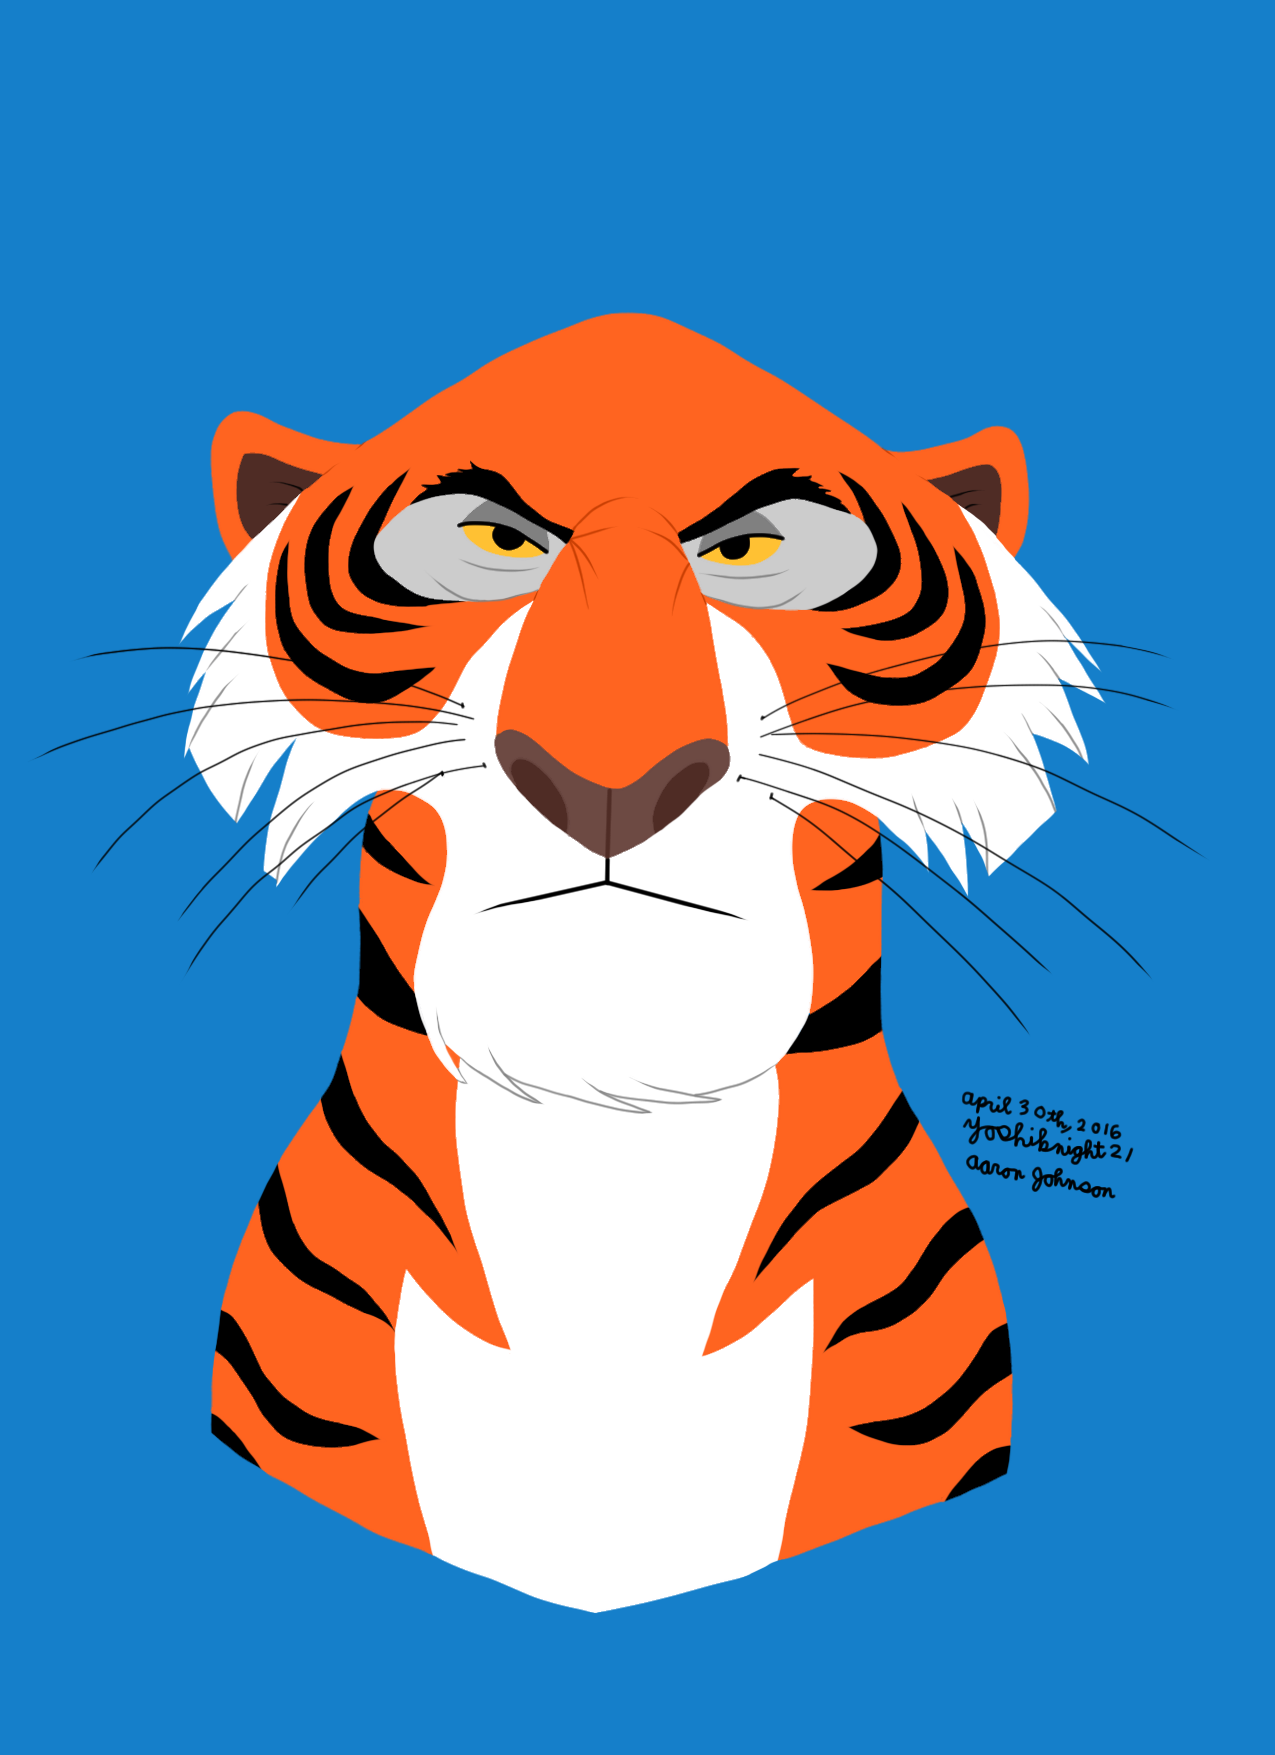 shere khan as the enemy in mowglis Ch 5: mowgli's song that he sang at the council rock when he danced on shere khan's hide the song of mowgli--i, mowgli, am singing let the jungle.